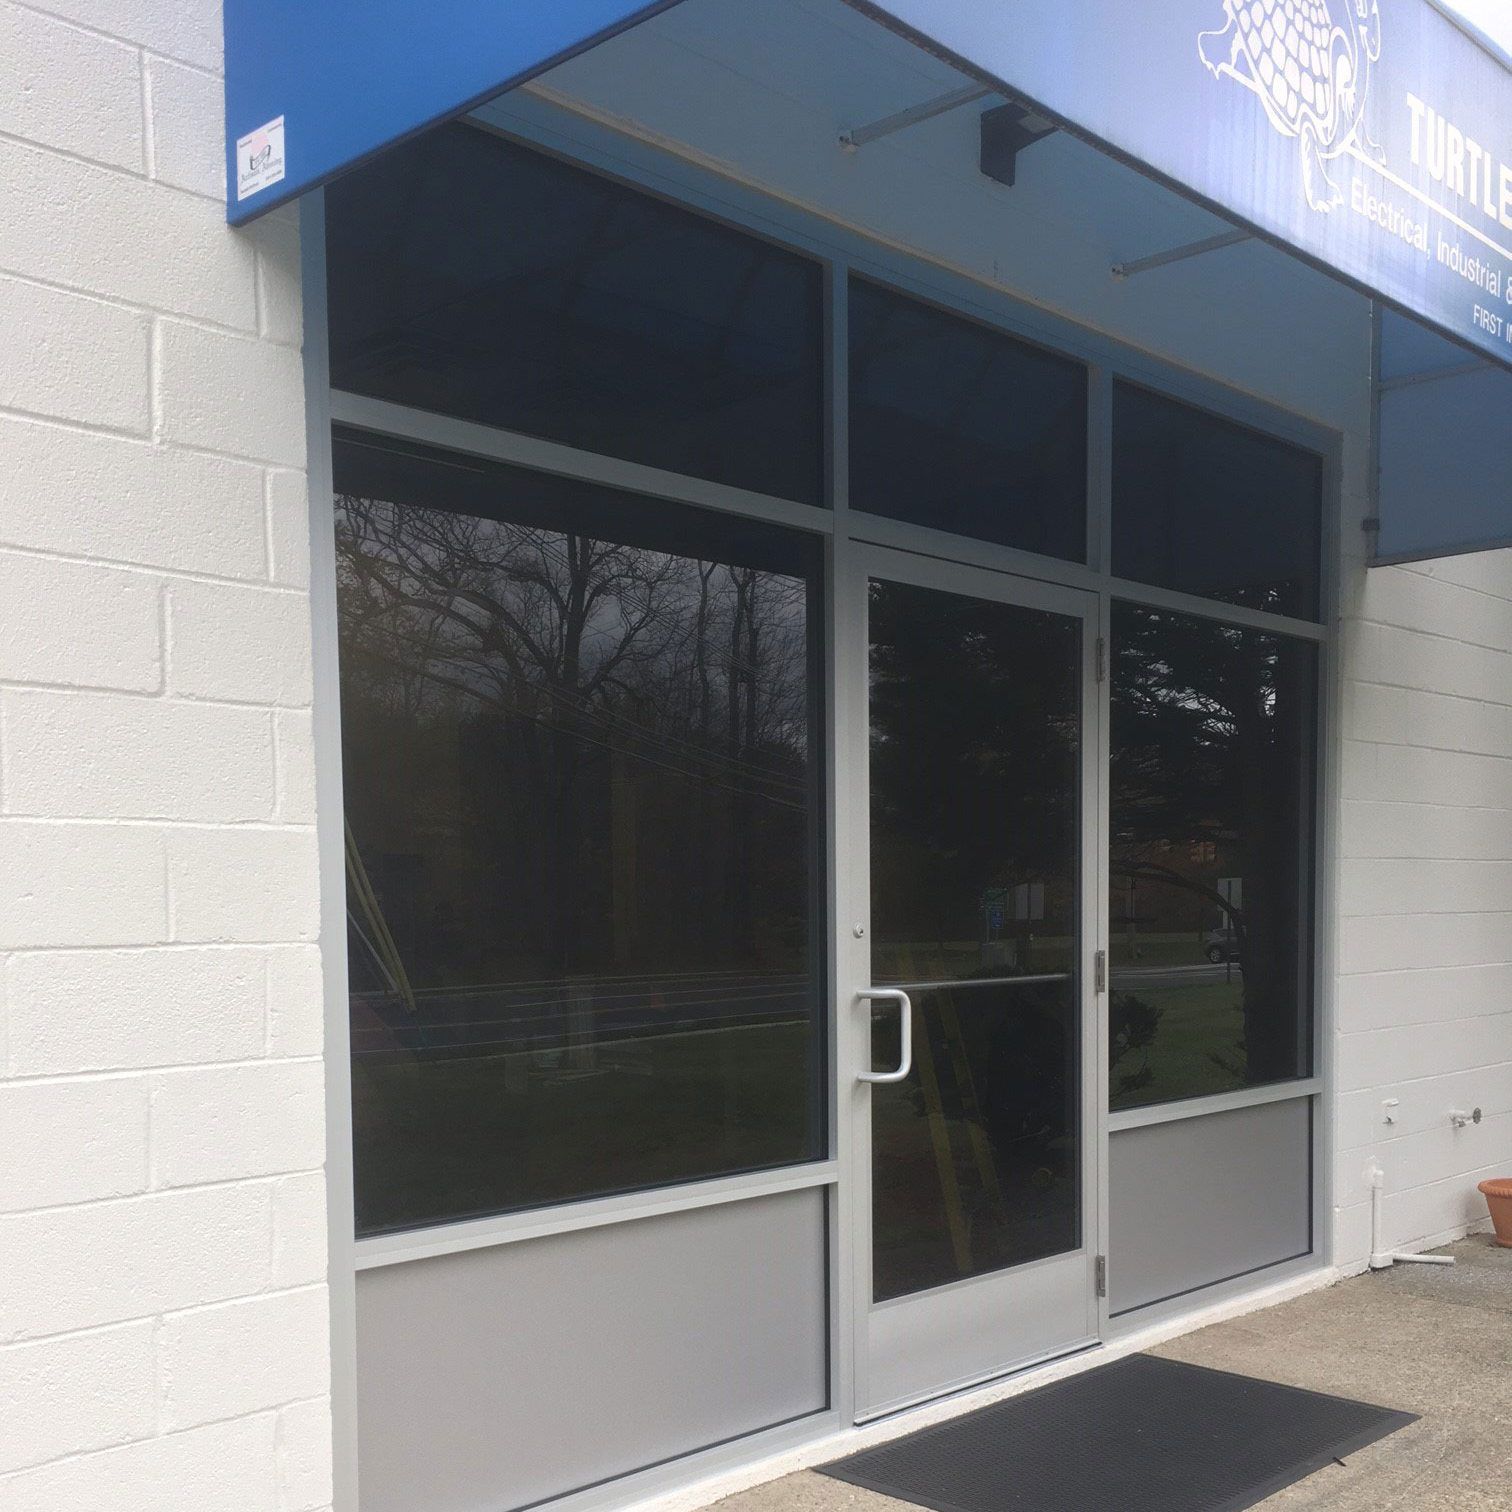 Single glass storefront door - Everything Was Finished Off In Clear Anodized Aluminum Break Metal And Caulked For A Water Tight Seal From The Elements